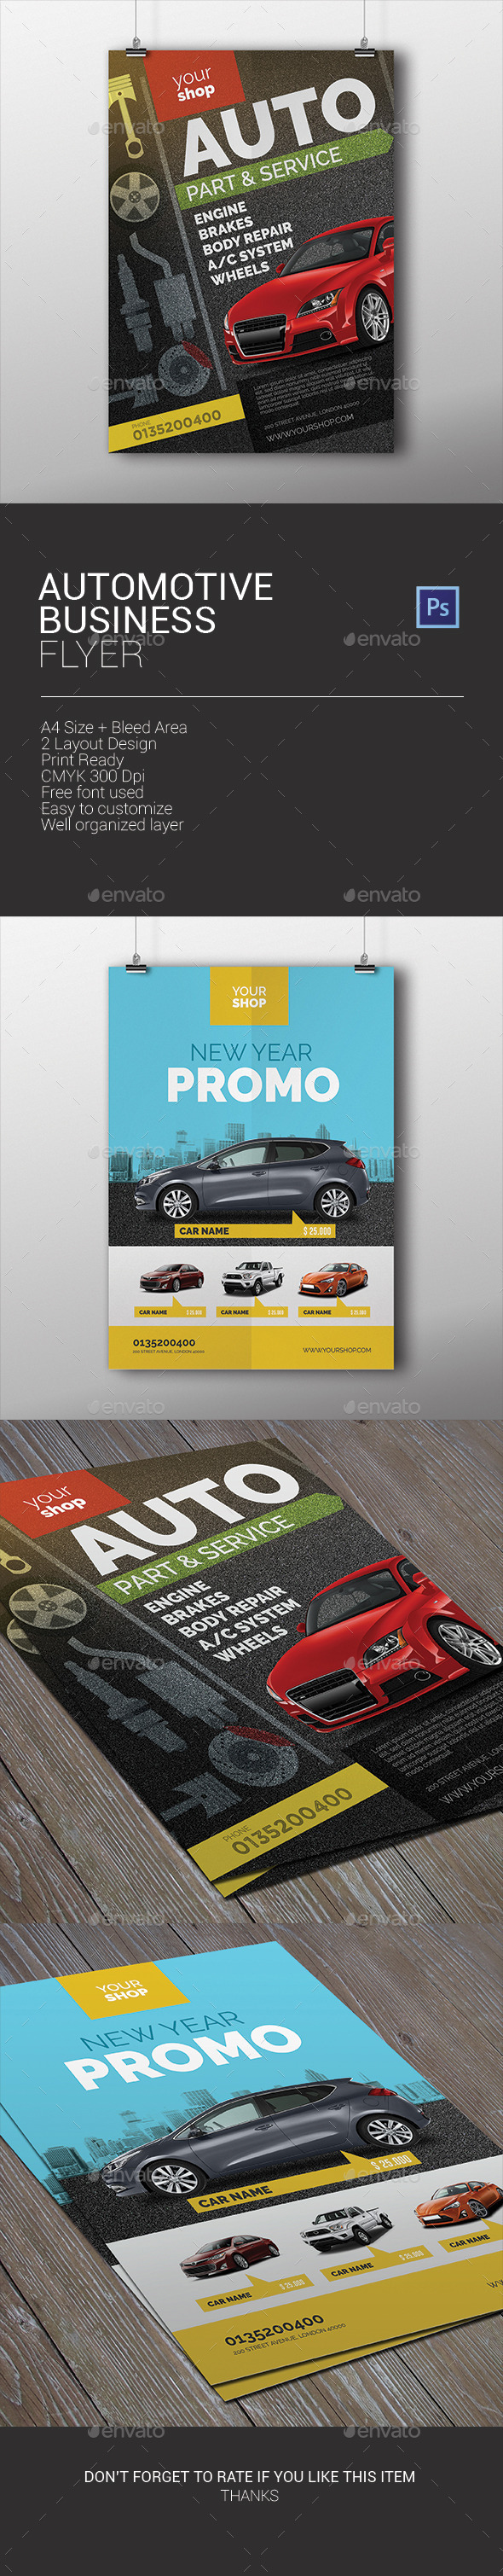 GraphicRiver Automotive Business Flyer 10031704